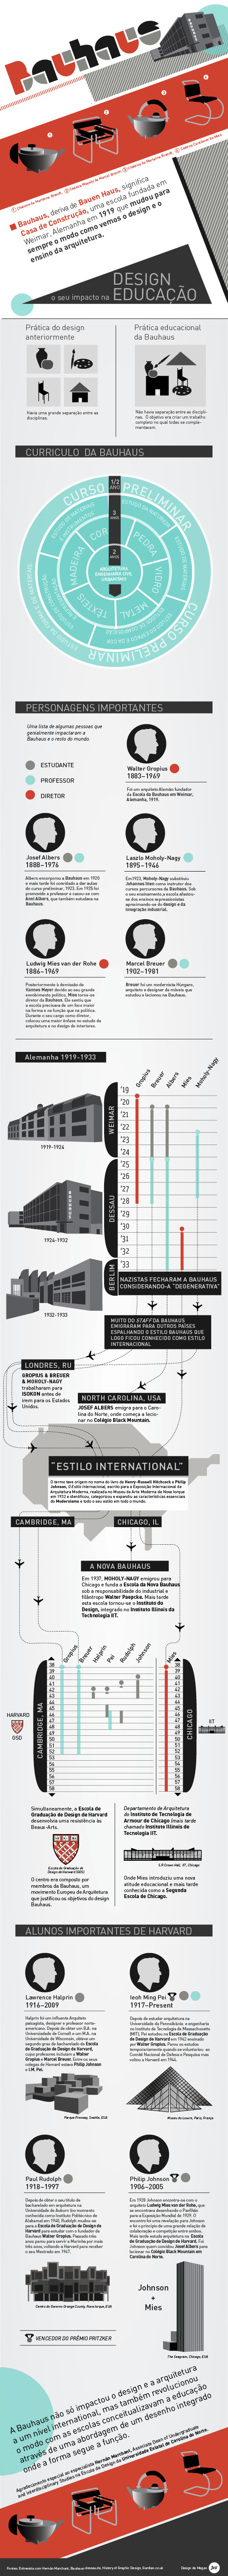 1334341395 bauhaus portug  s Infogrfico: A Bauhaus